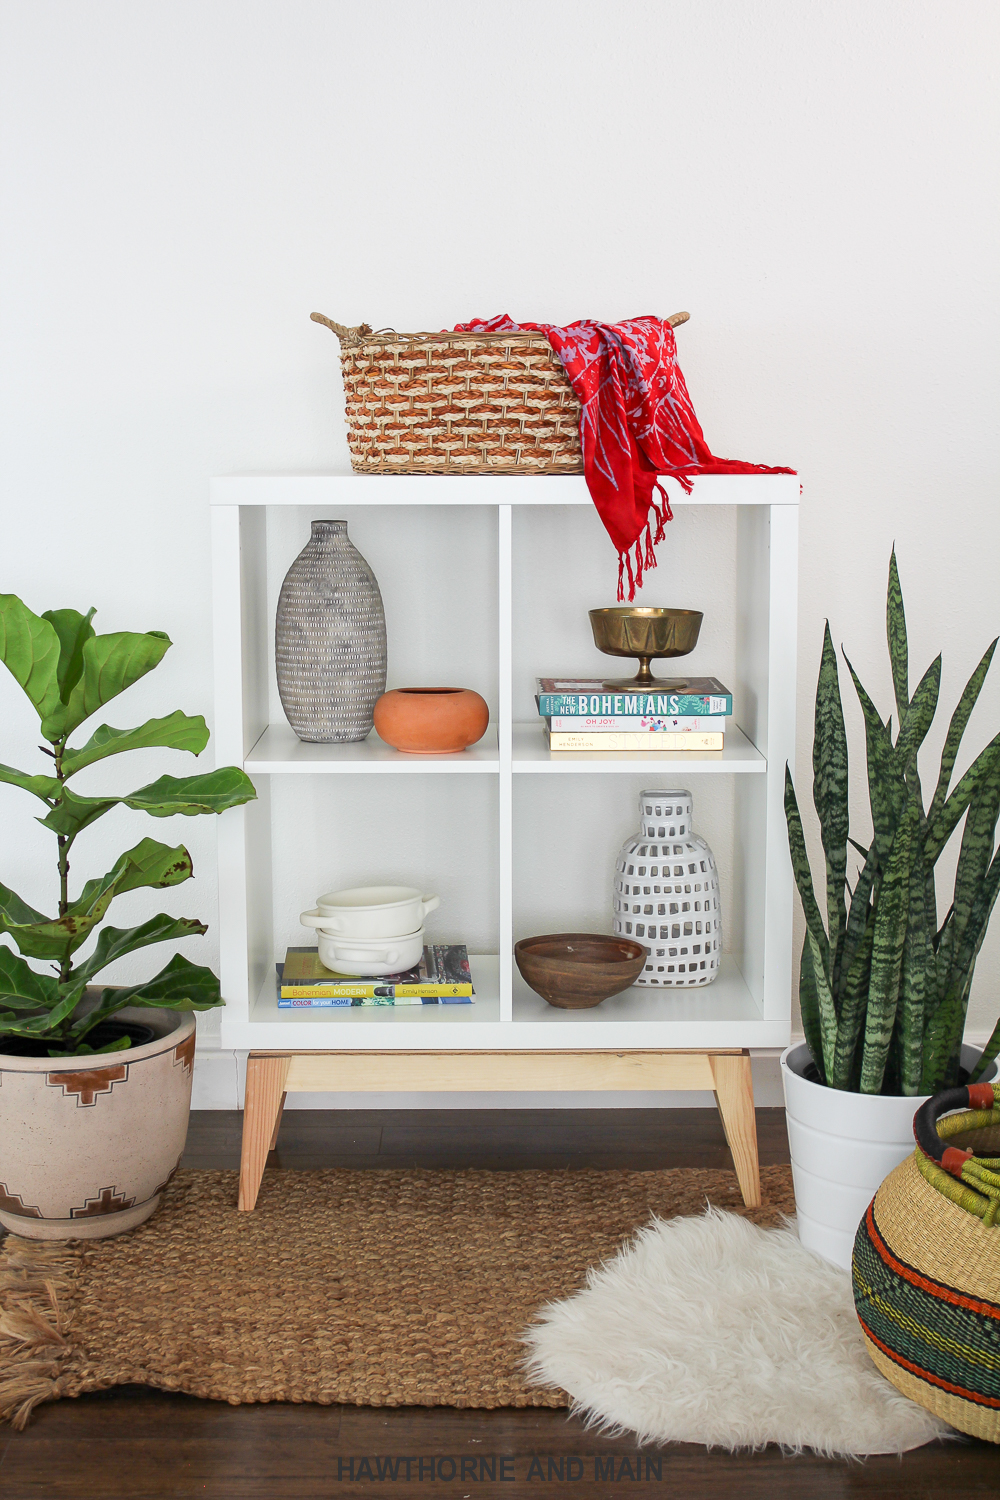 check these out too target bookshelf hack being adventurous the